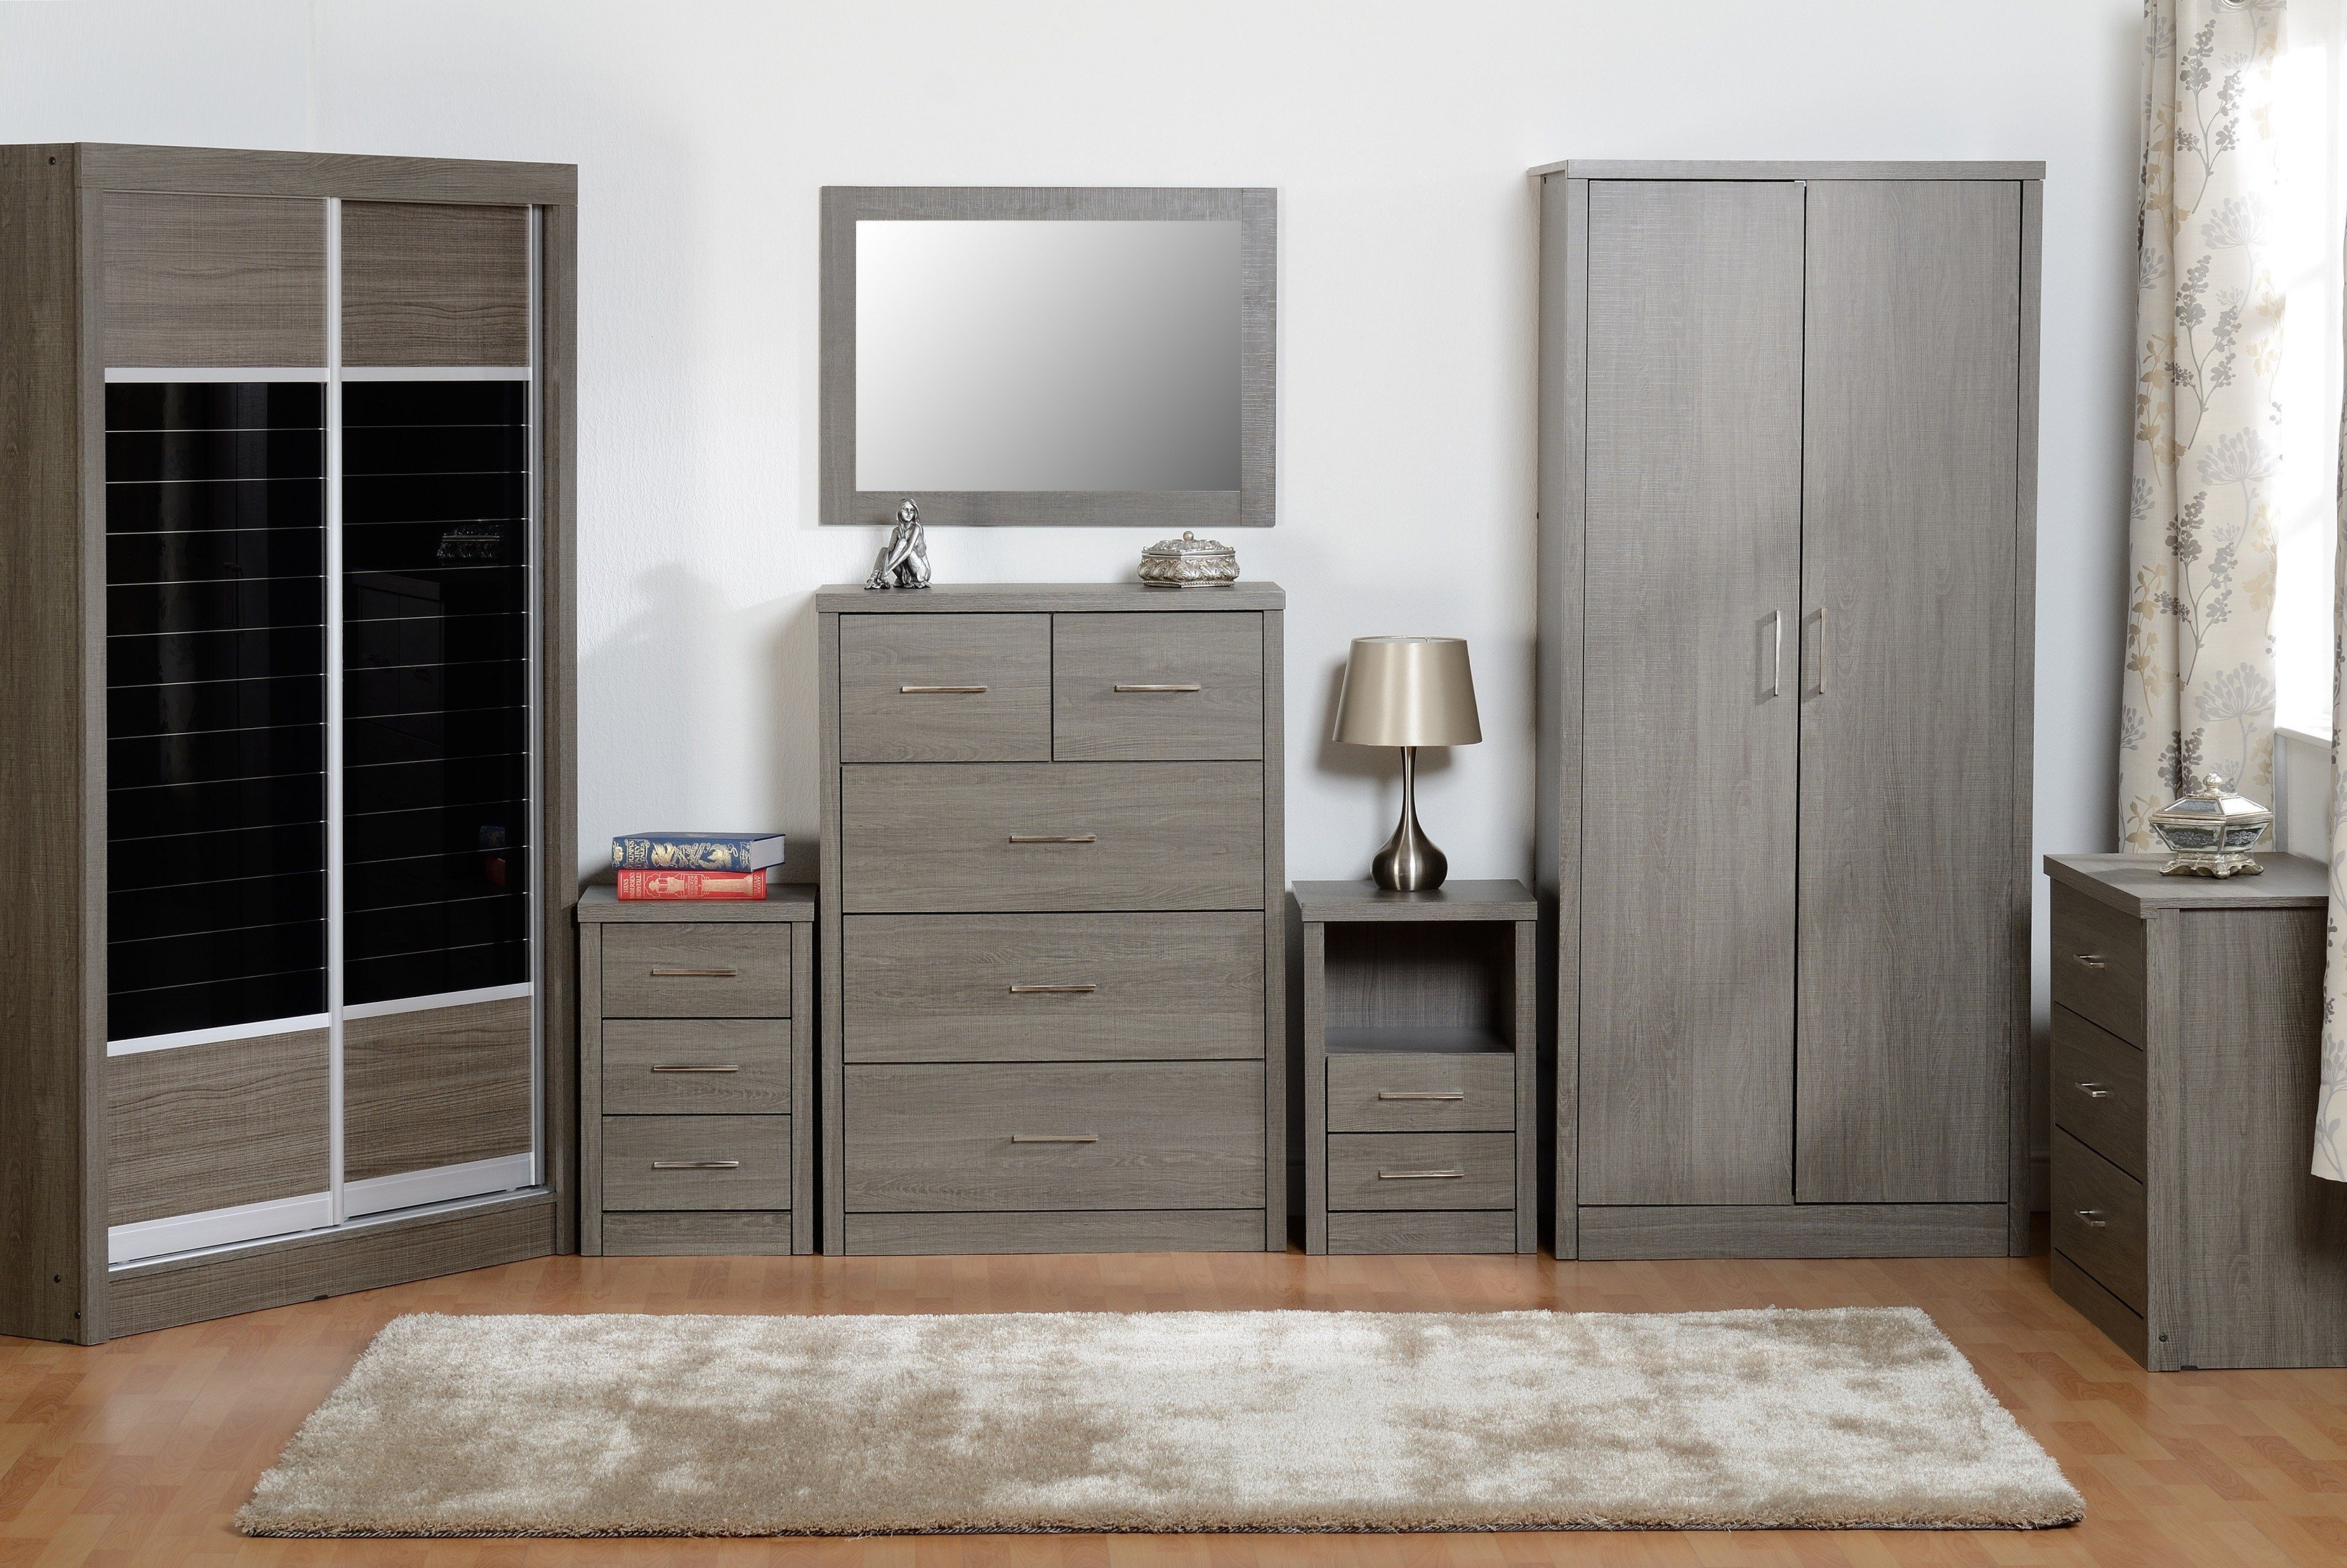 Best Seconique Lisbon Black Bedroom Furniture Range Wardrobe With Pictures